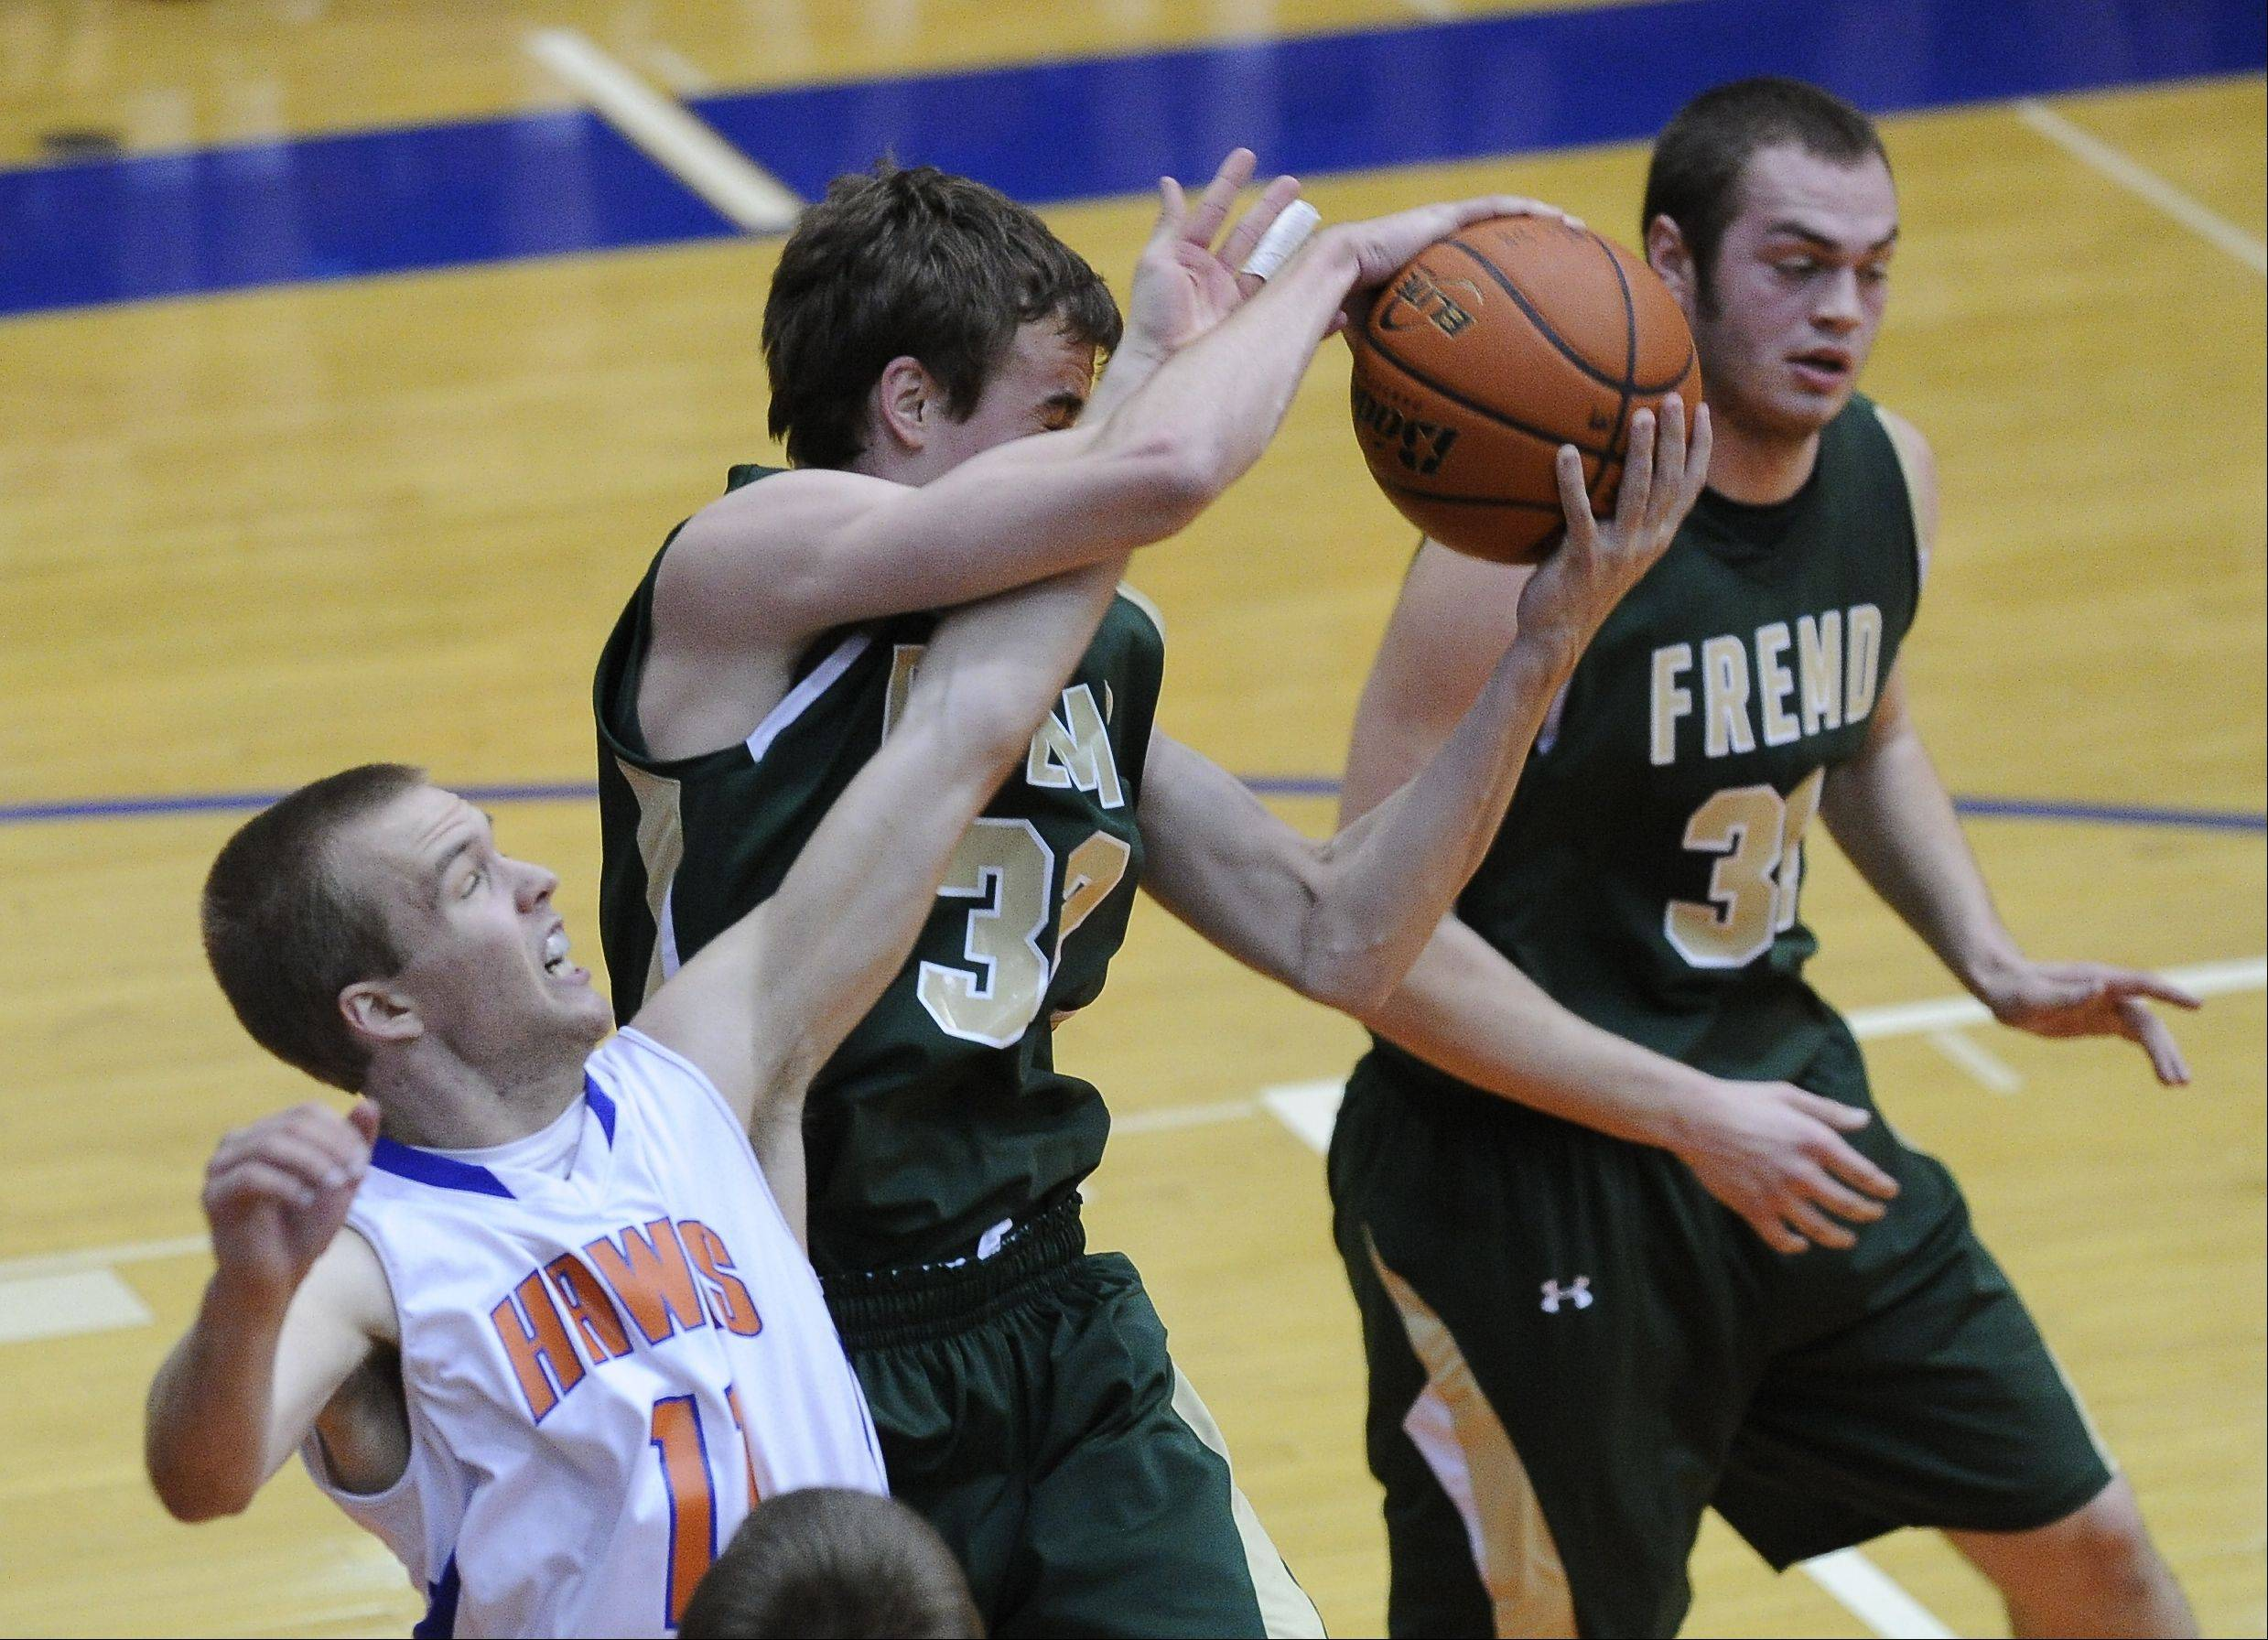 Images from the Fremd vs. Hoffman Estates boys basketball game on Thursday, December 6th, in Hoffman Estates.